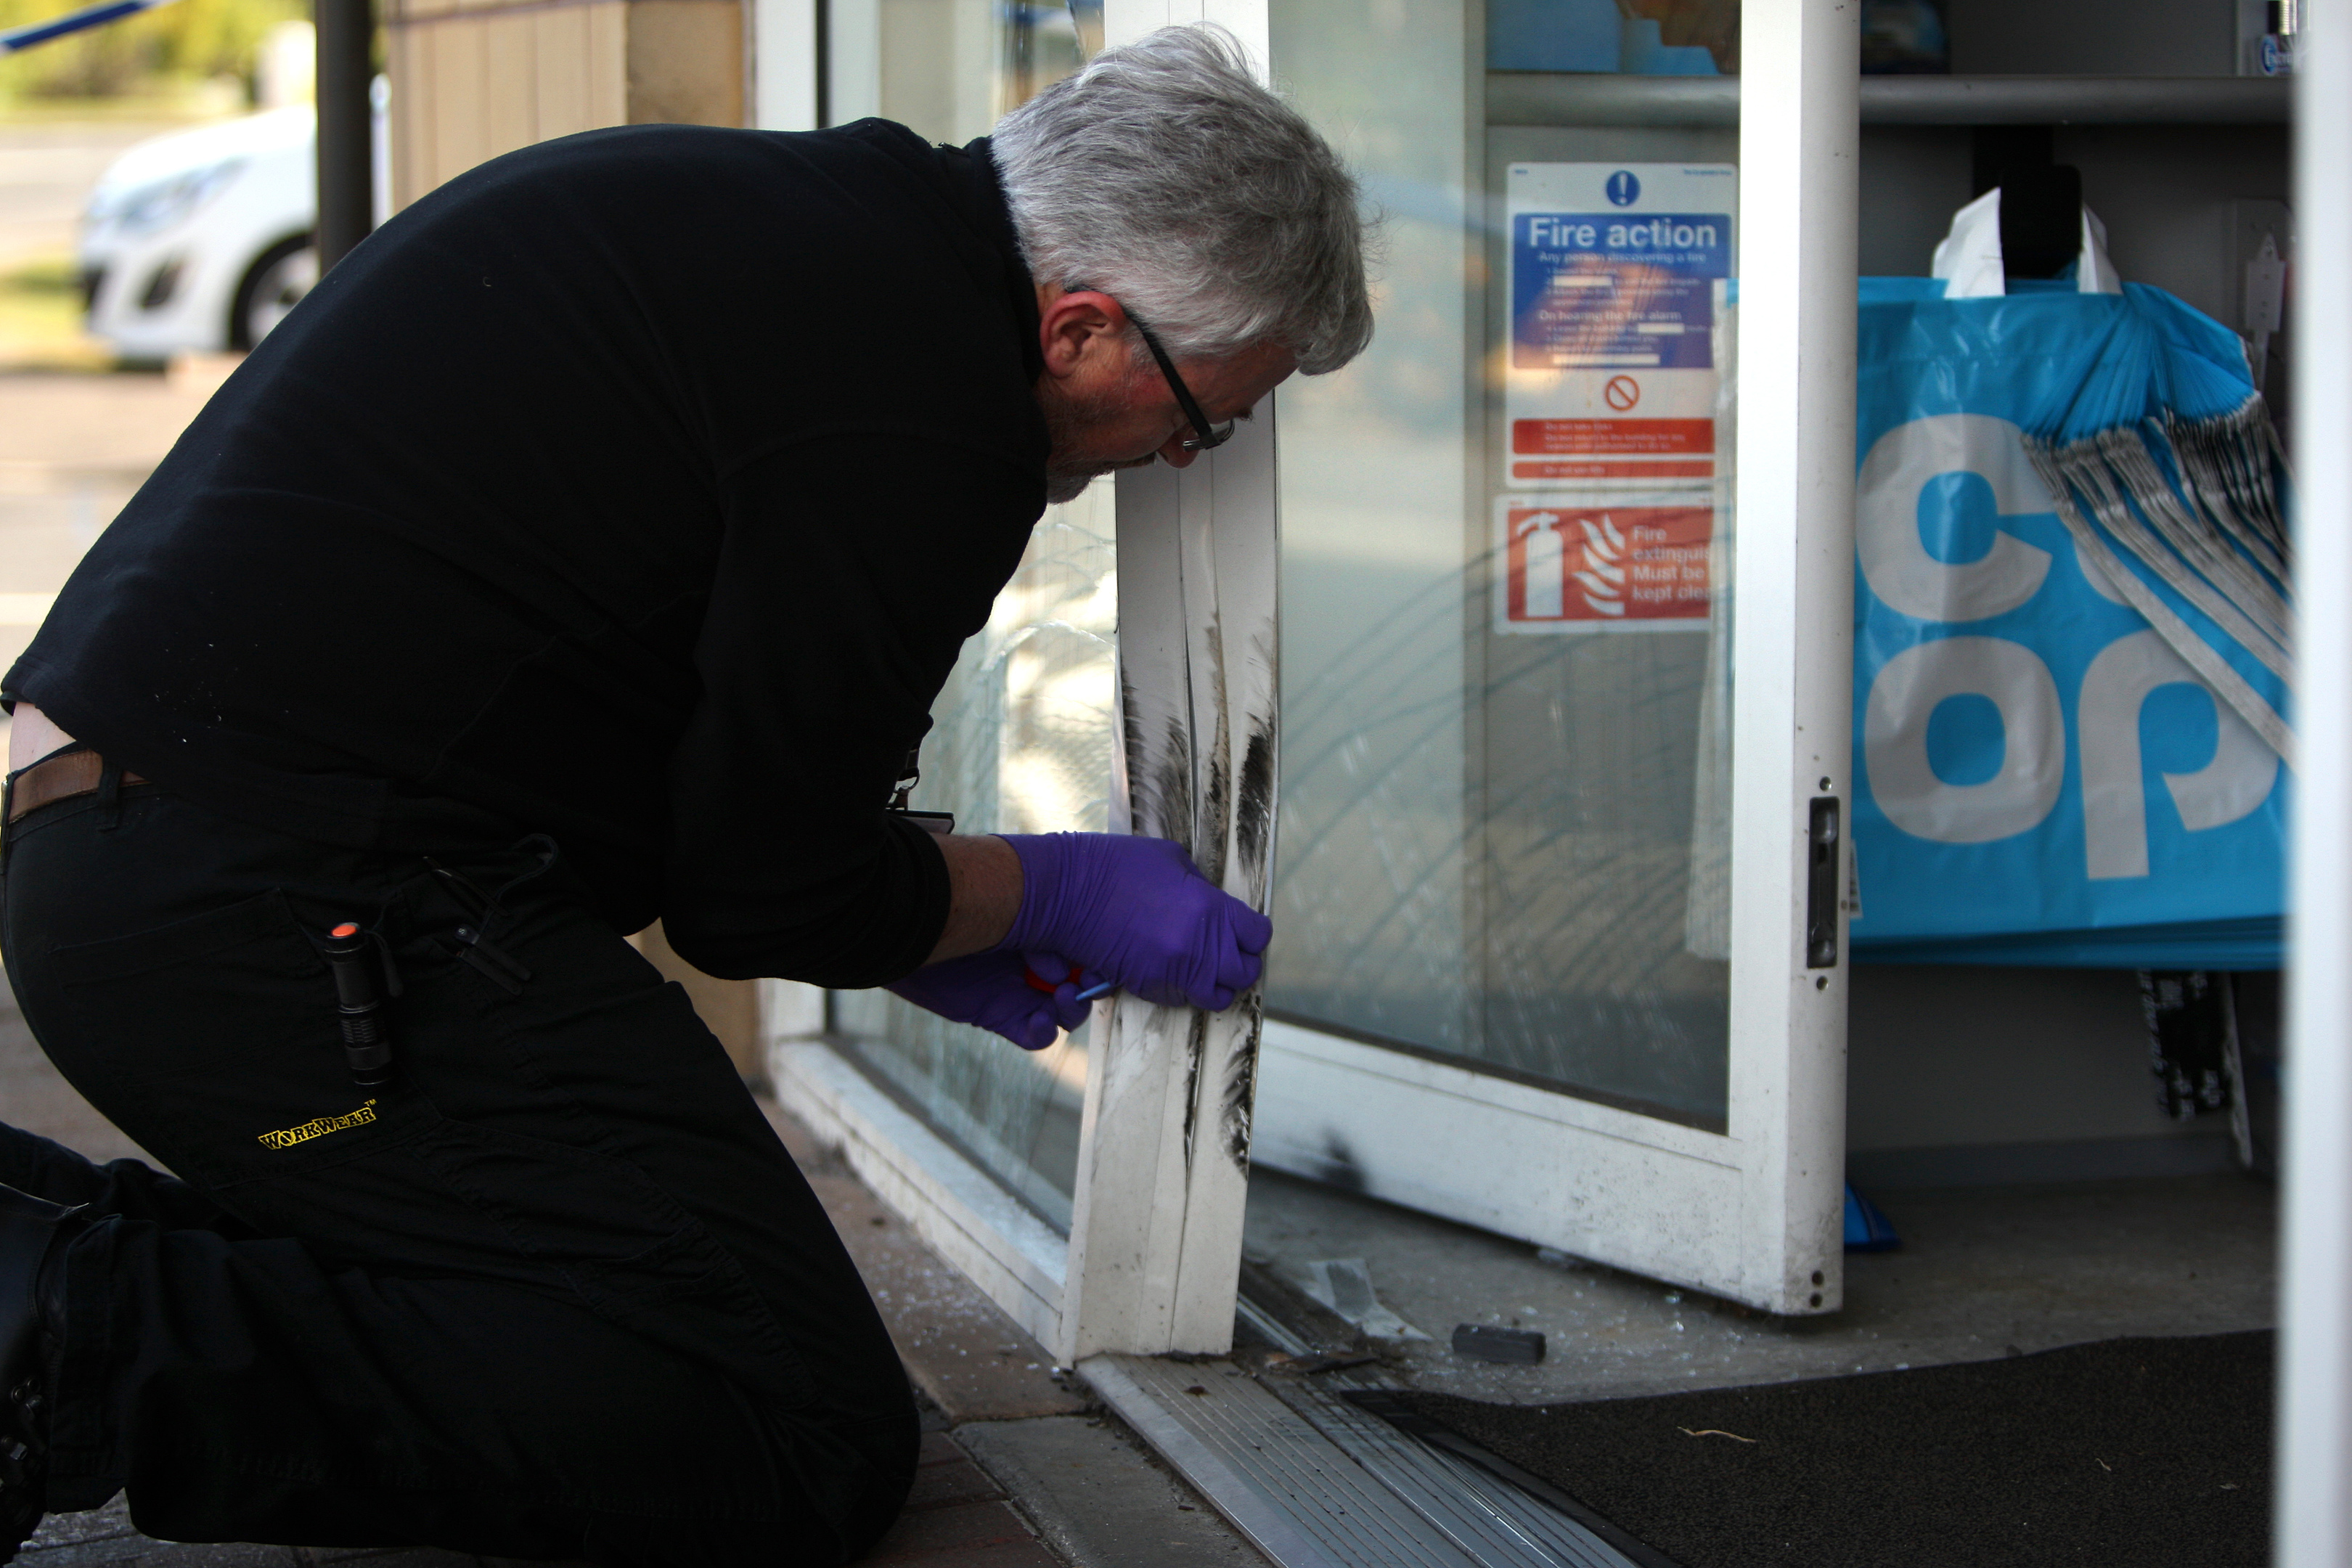 Police investigate the incident at the Co-Op store at Panmurefield Village, Dundee.